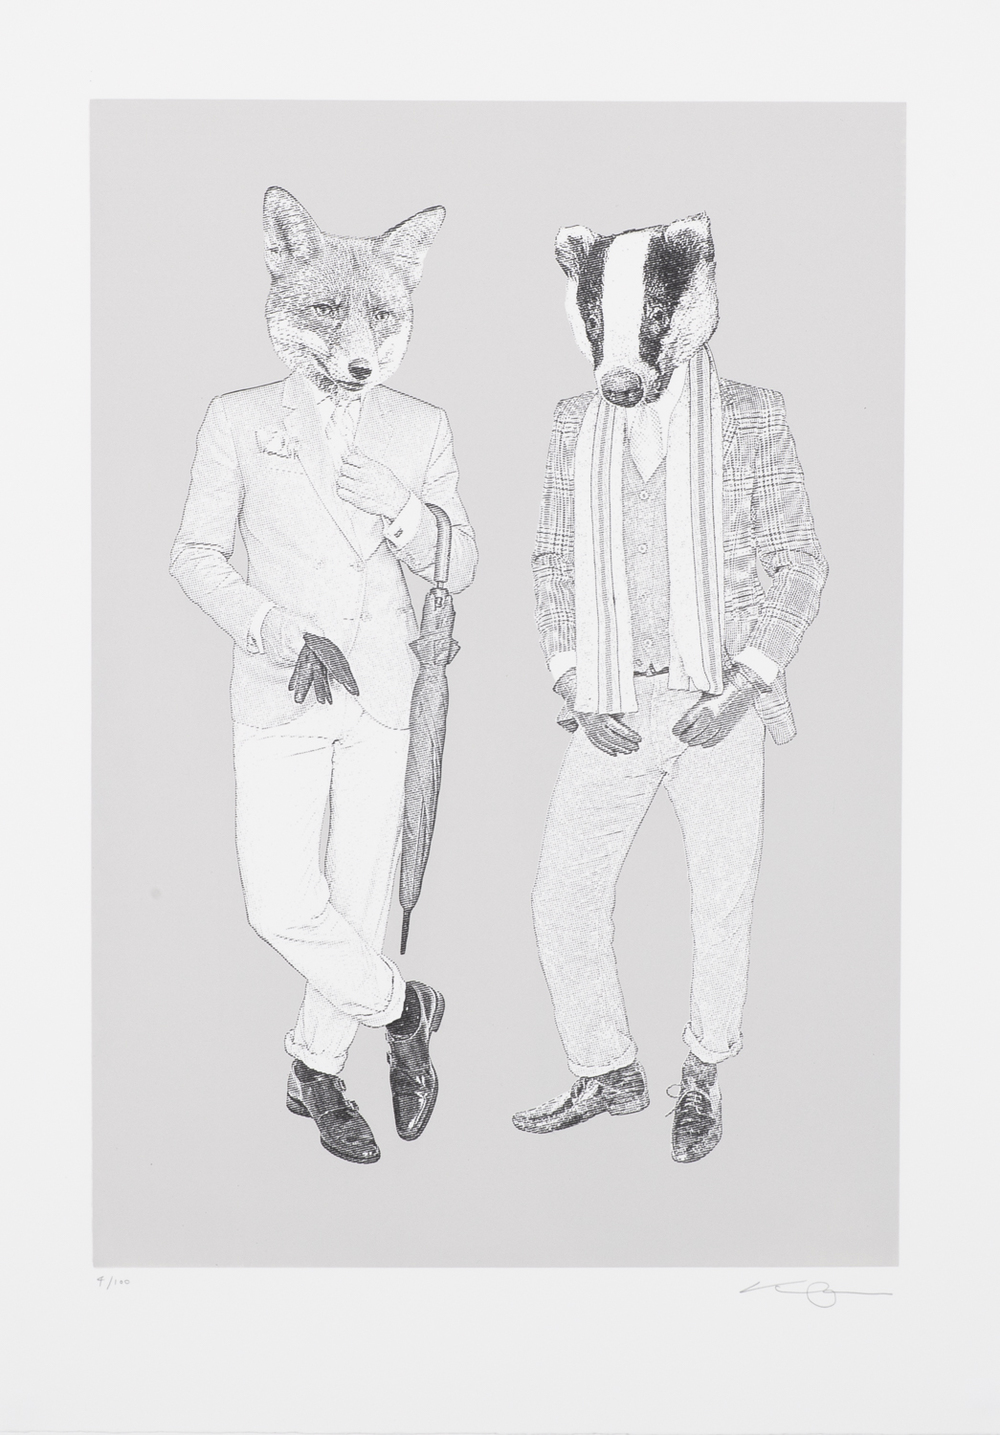 The Fox & Badger B&W